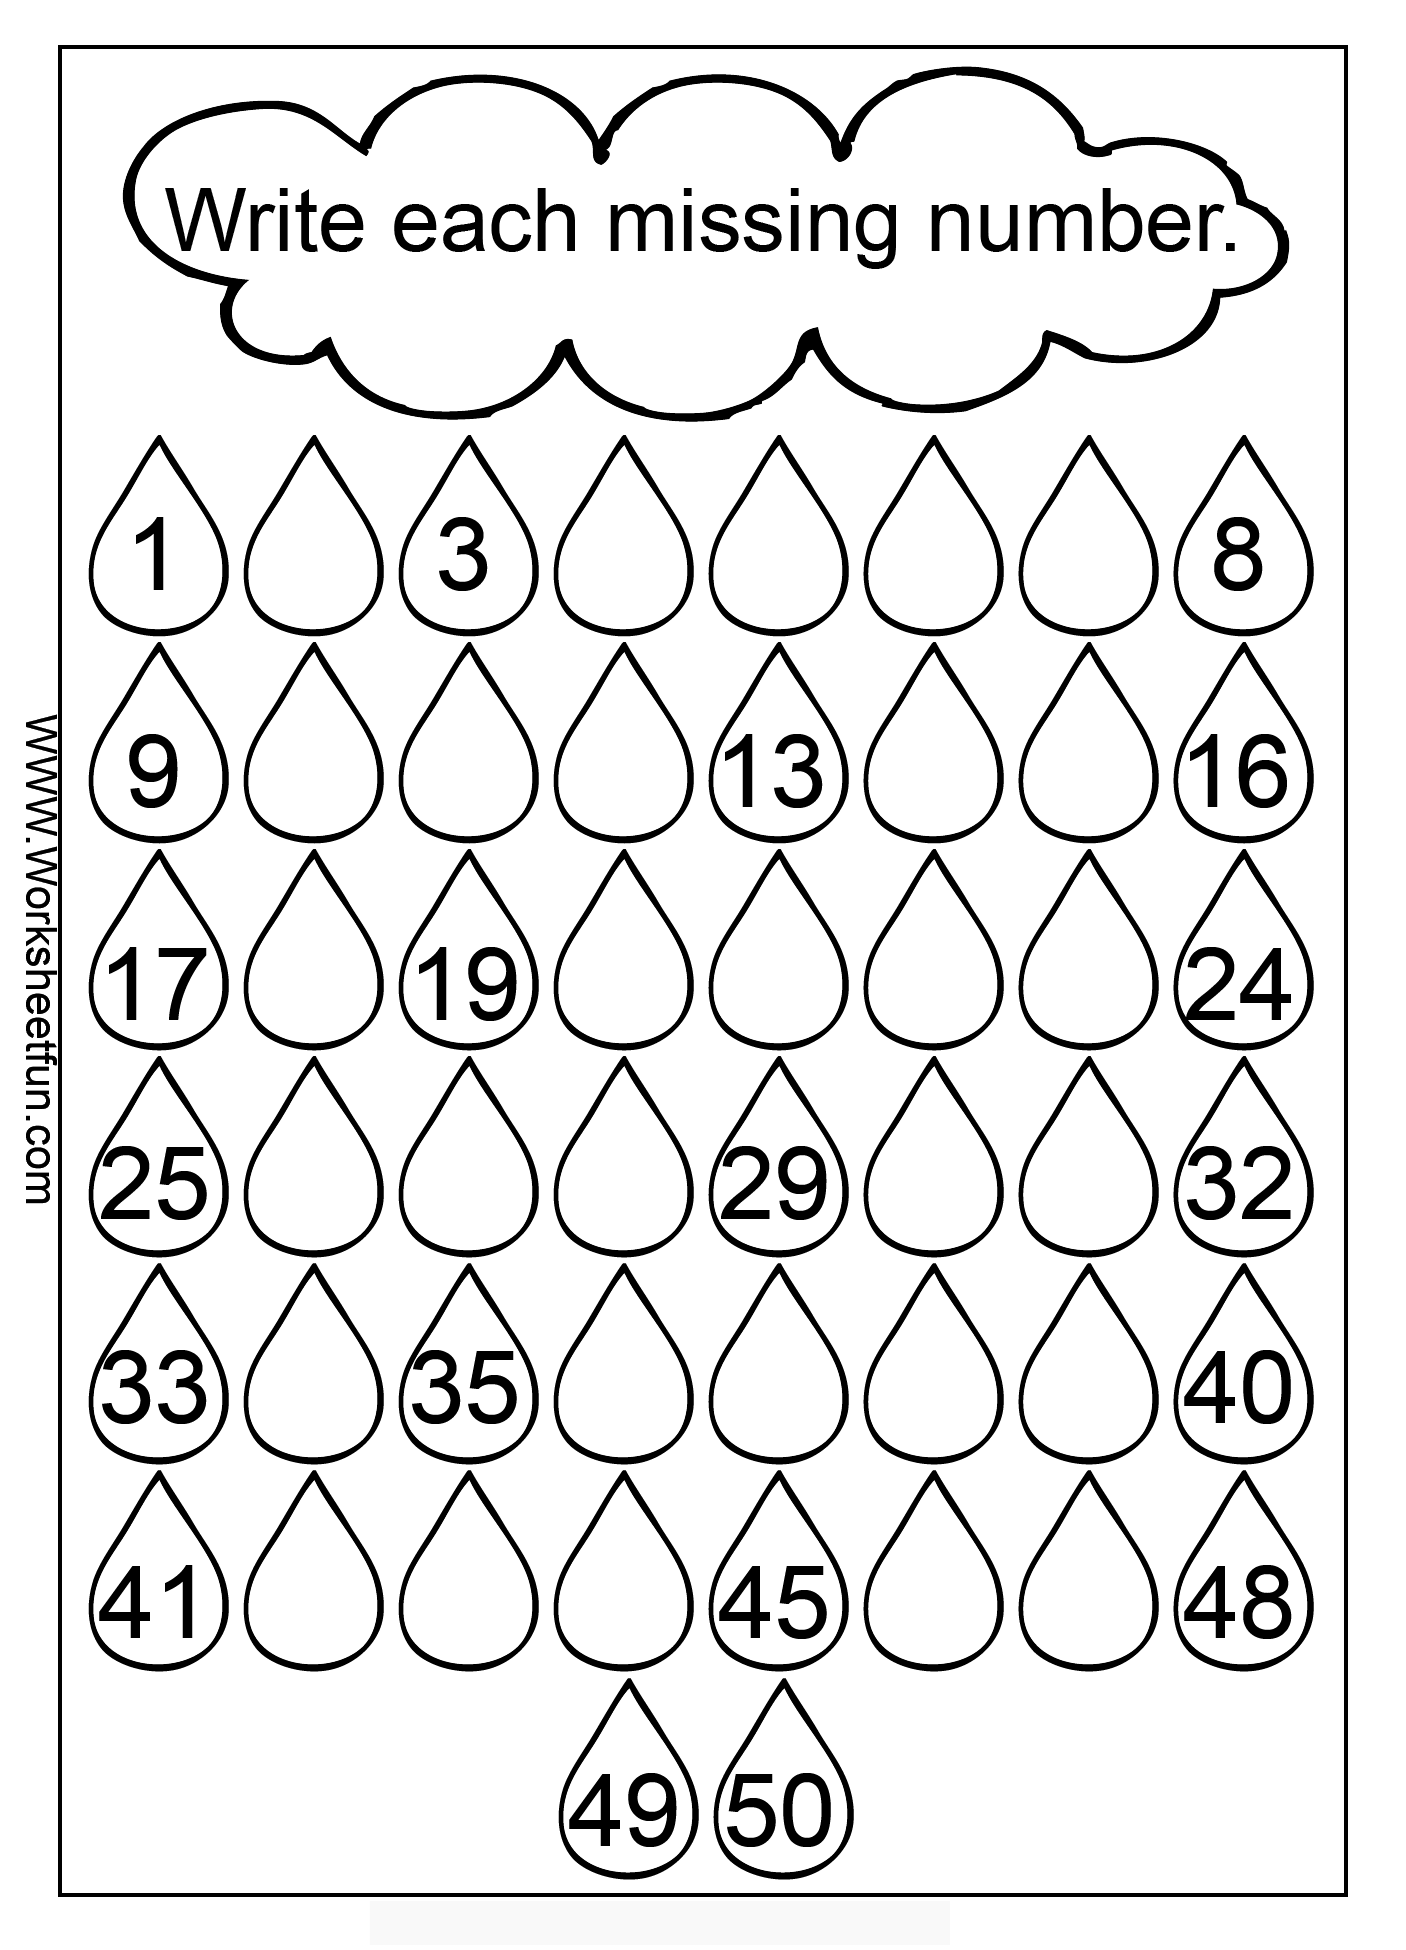 Fillin the Missing Numbers Worksheet – Smart Kids Math Worksheets